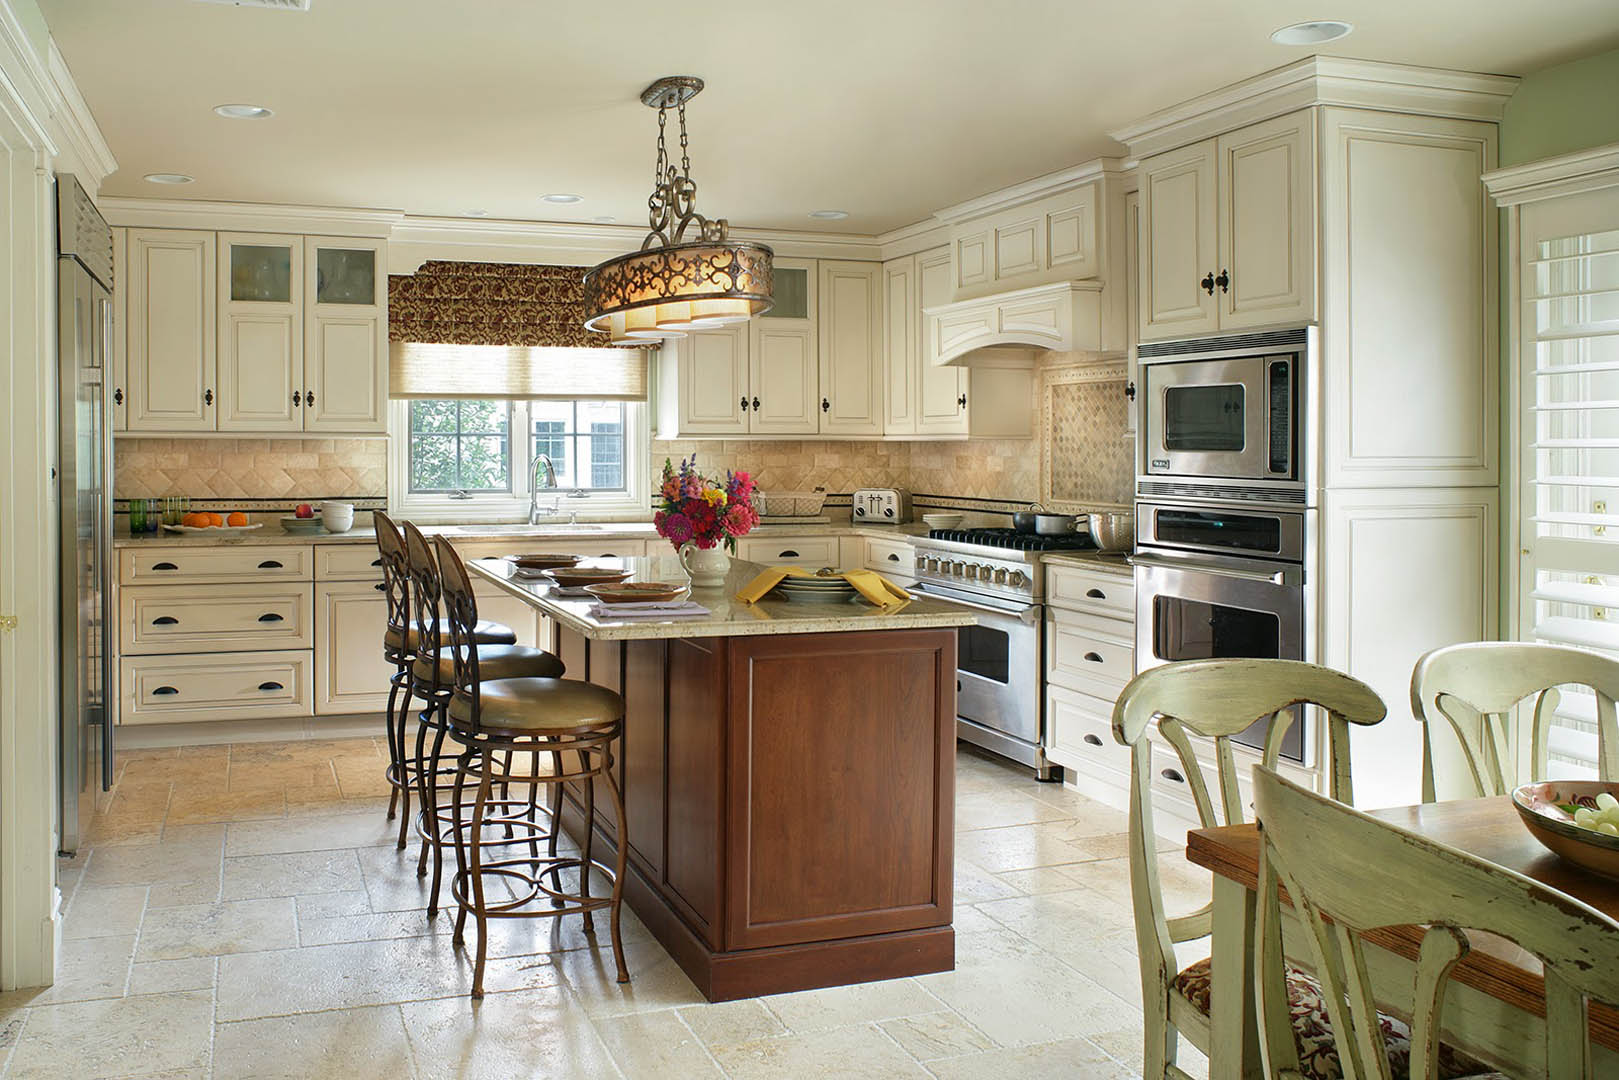 cream and caramel kitchen - thyme & place design